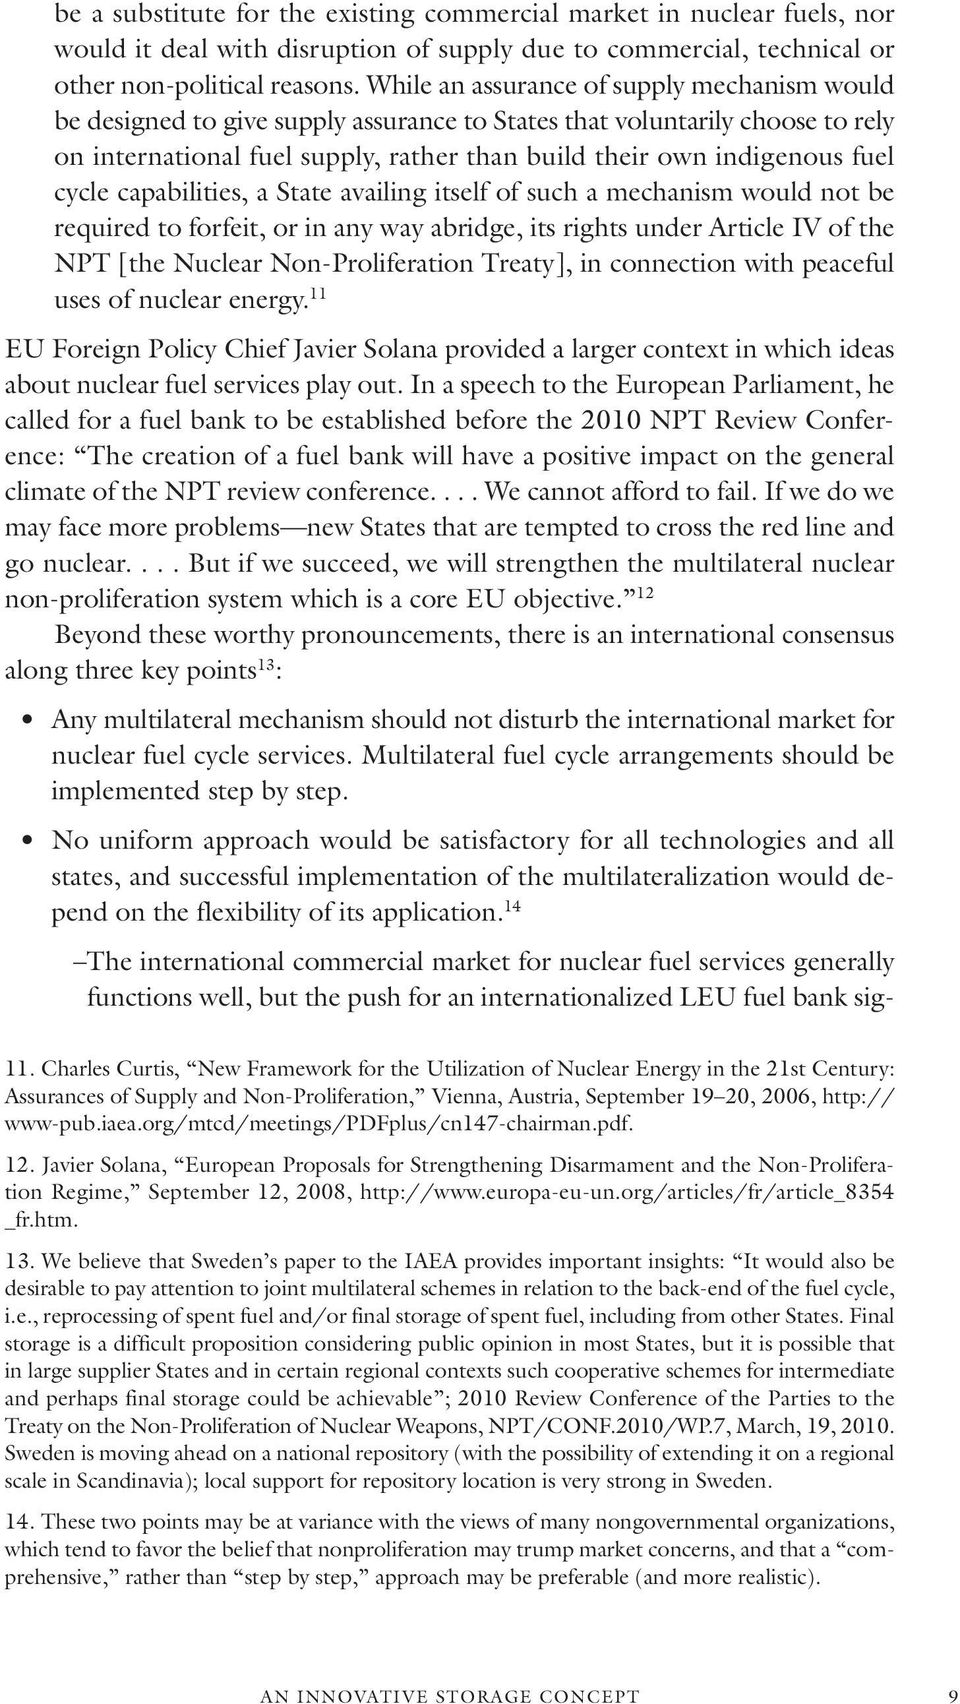 cycle capabilities, a State availing itself of such a mechanism would not be required to forfeit, or in any way abridge, its rights under Article IV of the NPT [the Nuclear Non-Proliferation Treaty],